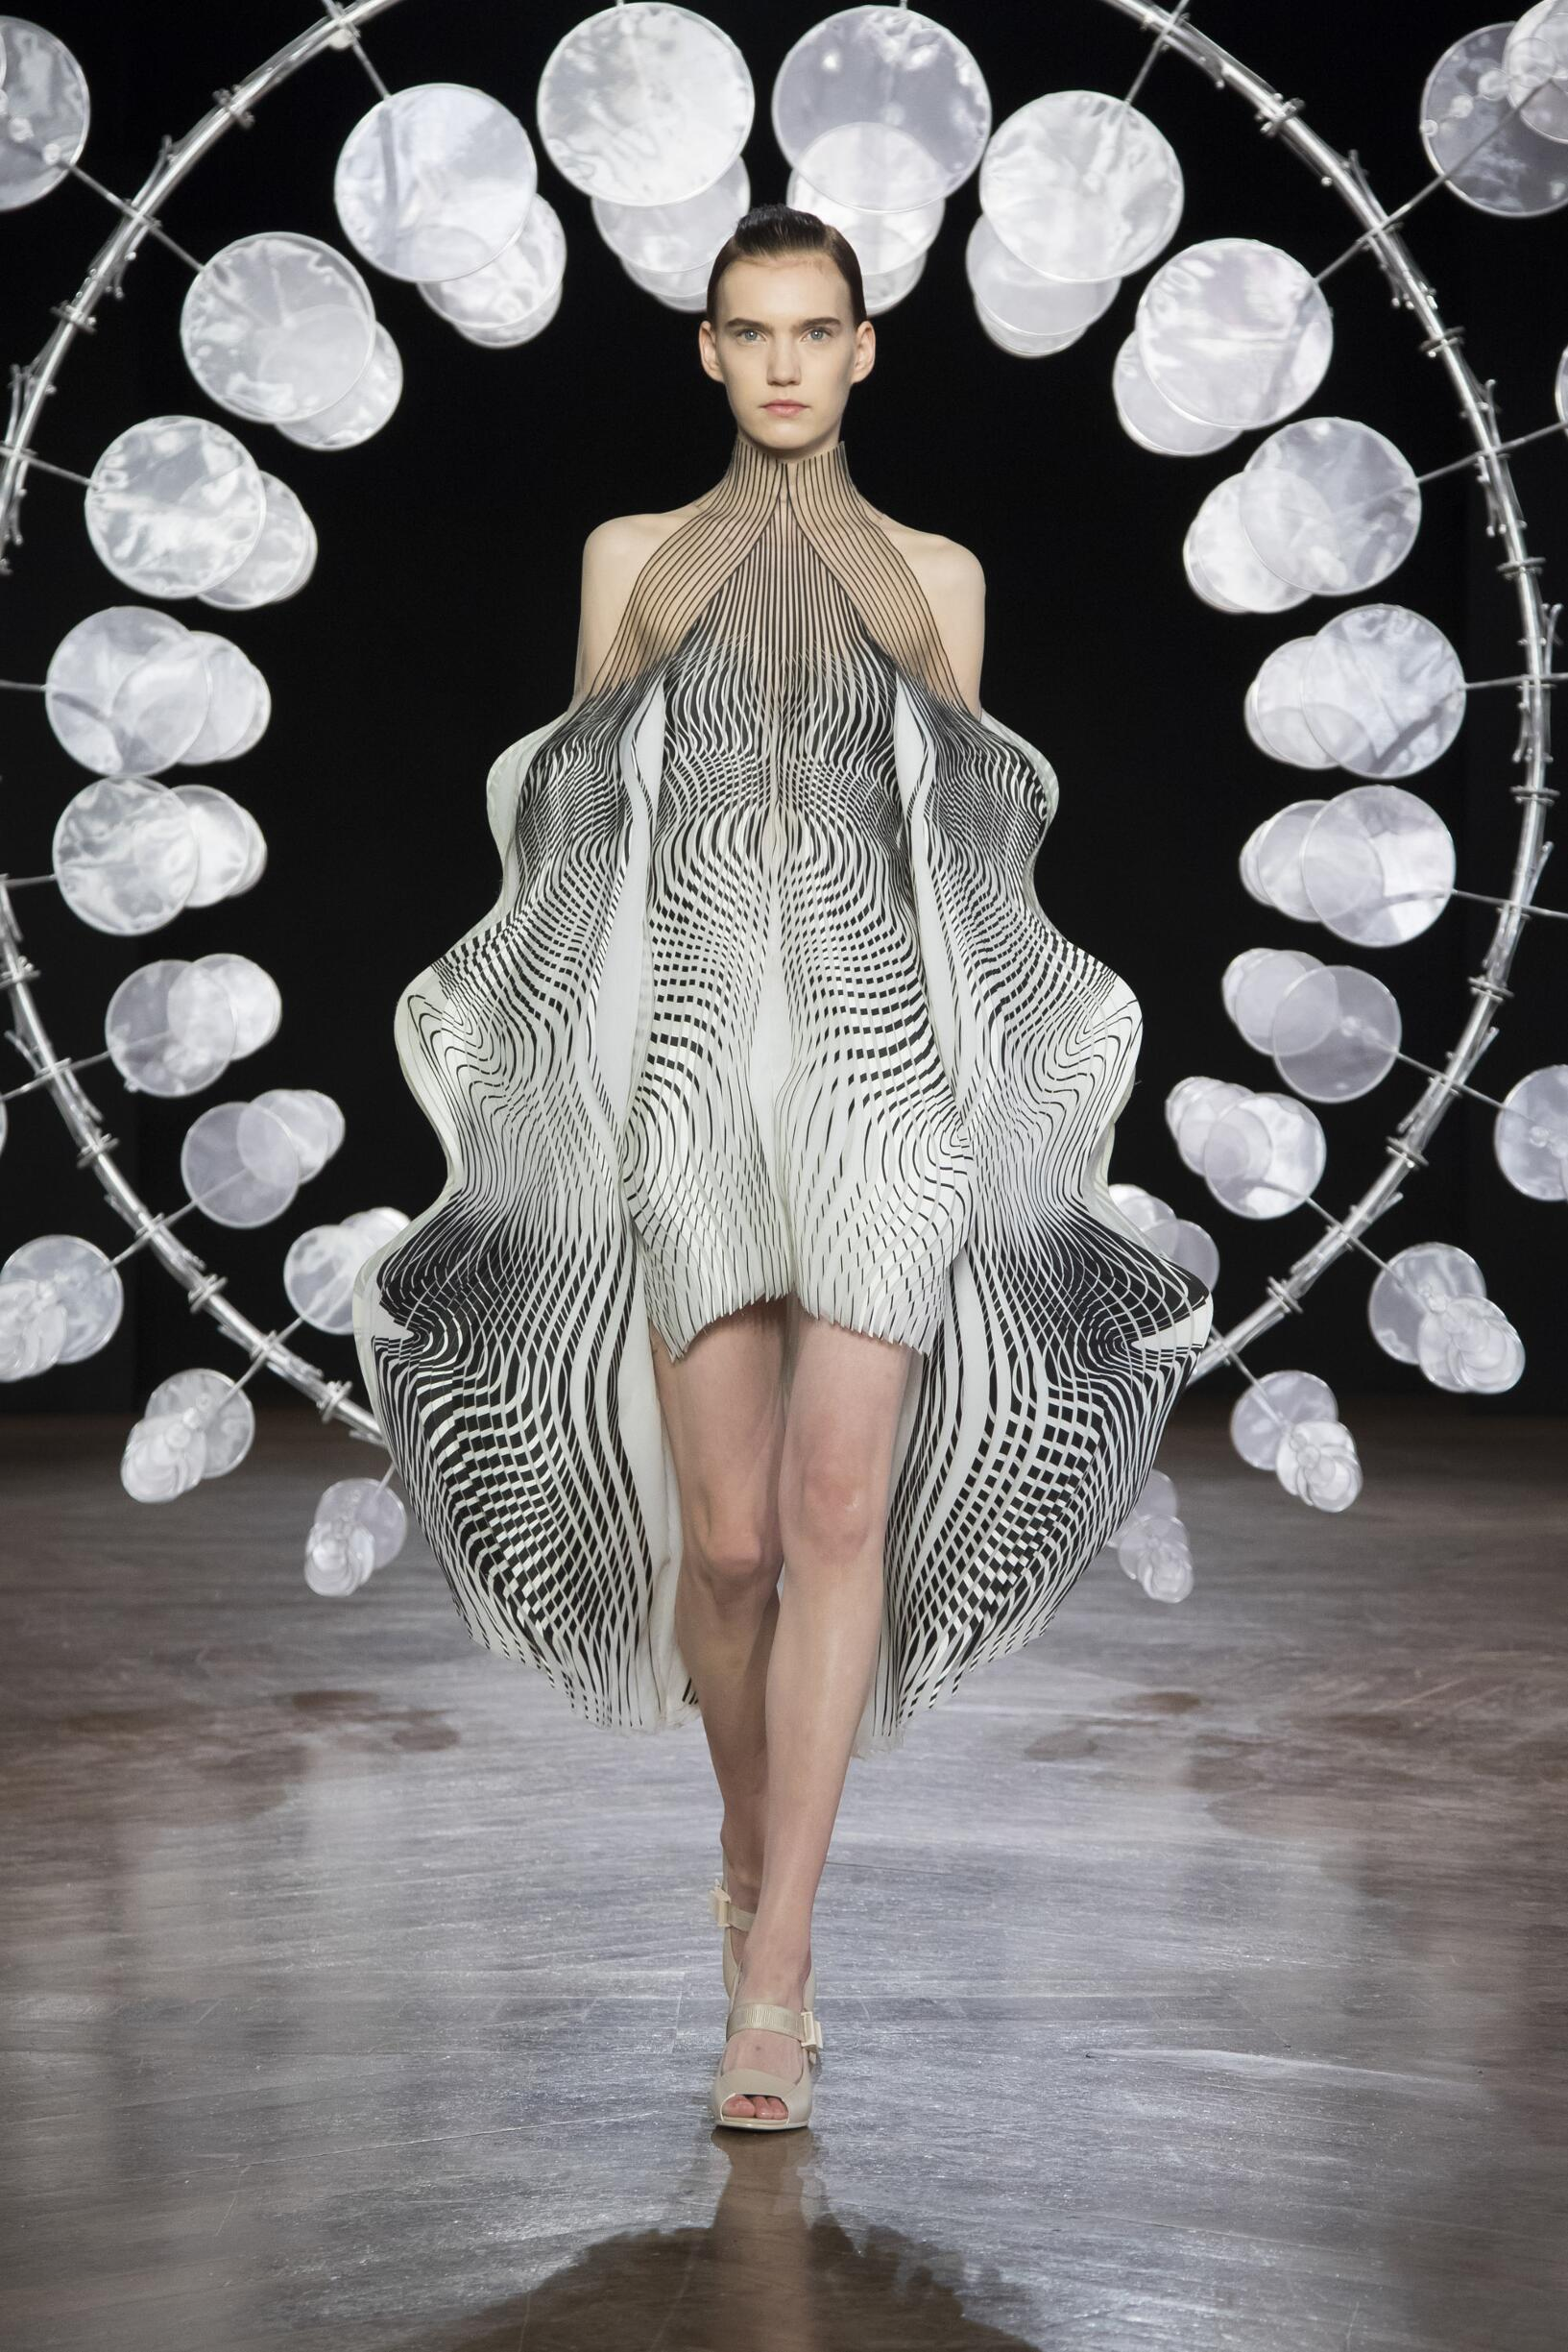 Model Fashion Show Iris van Herpen Haute Couture